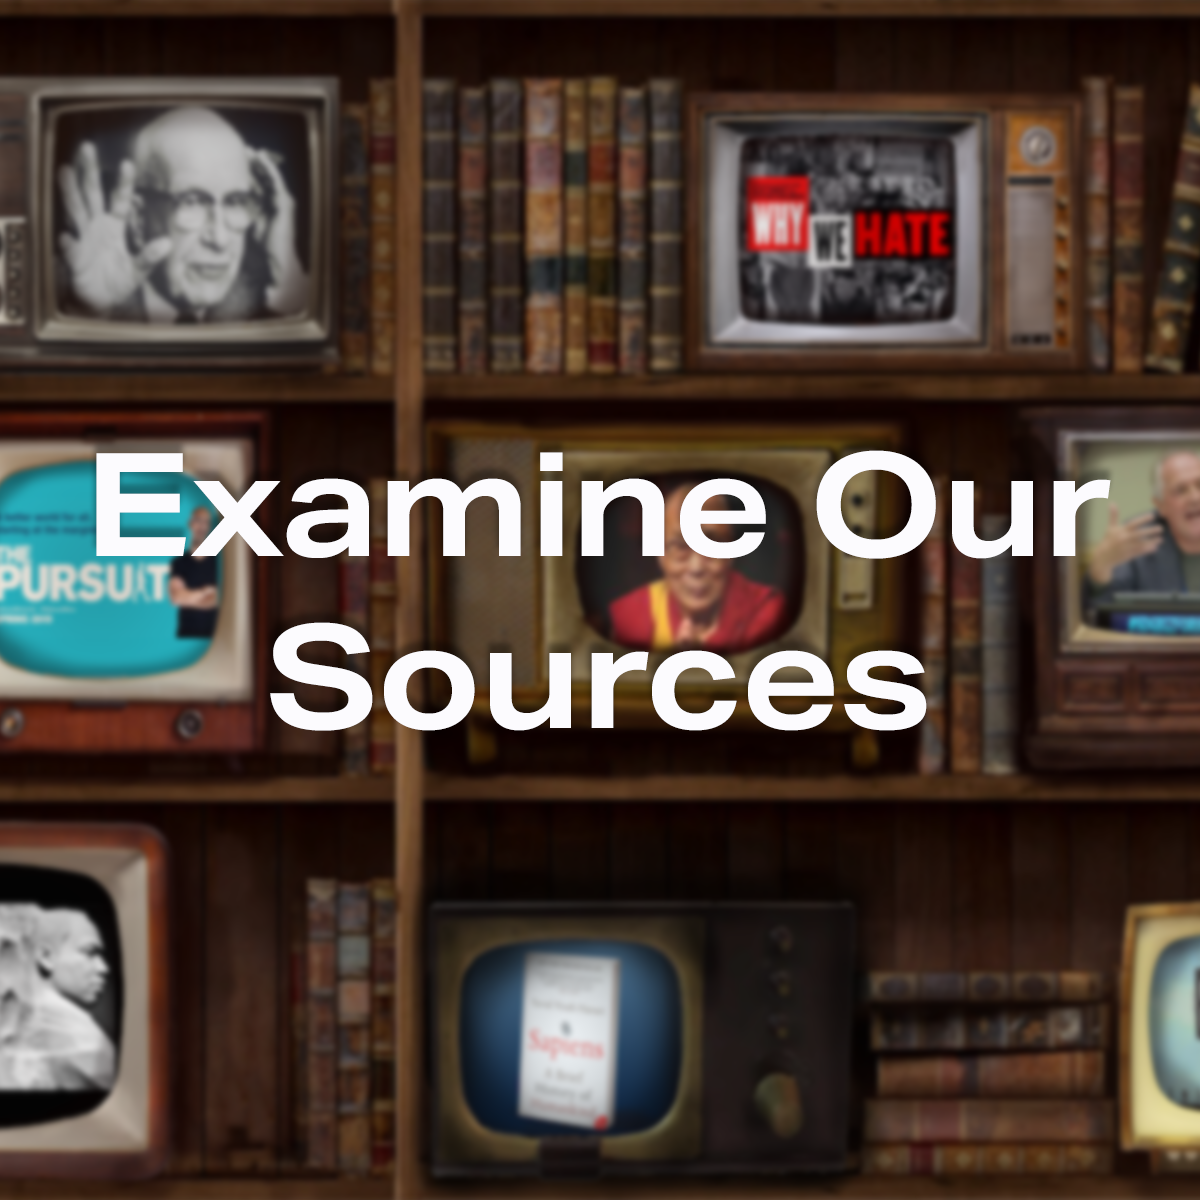 Examine Our Sources button